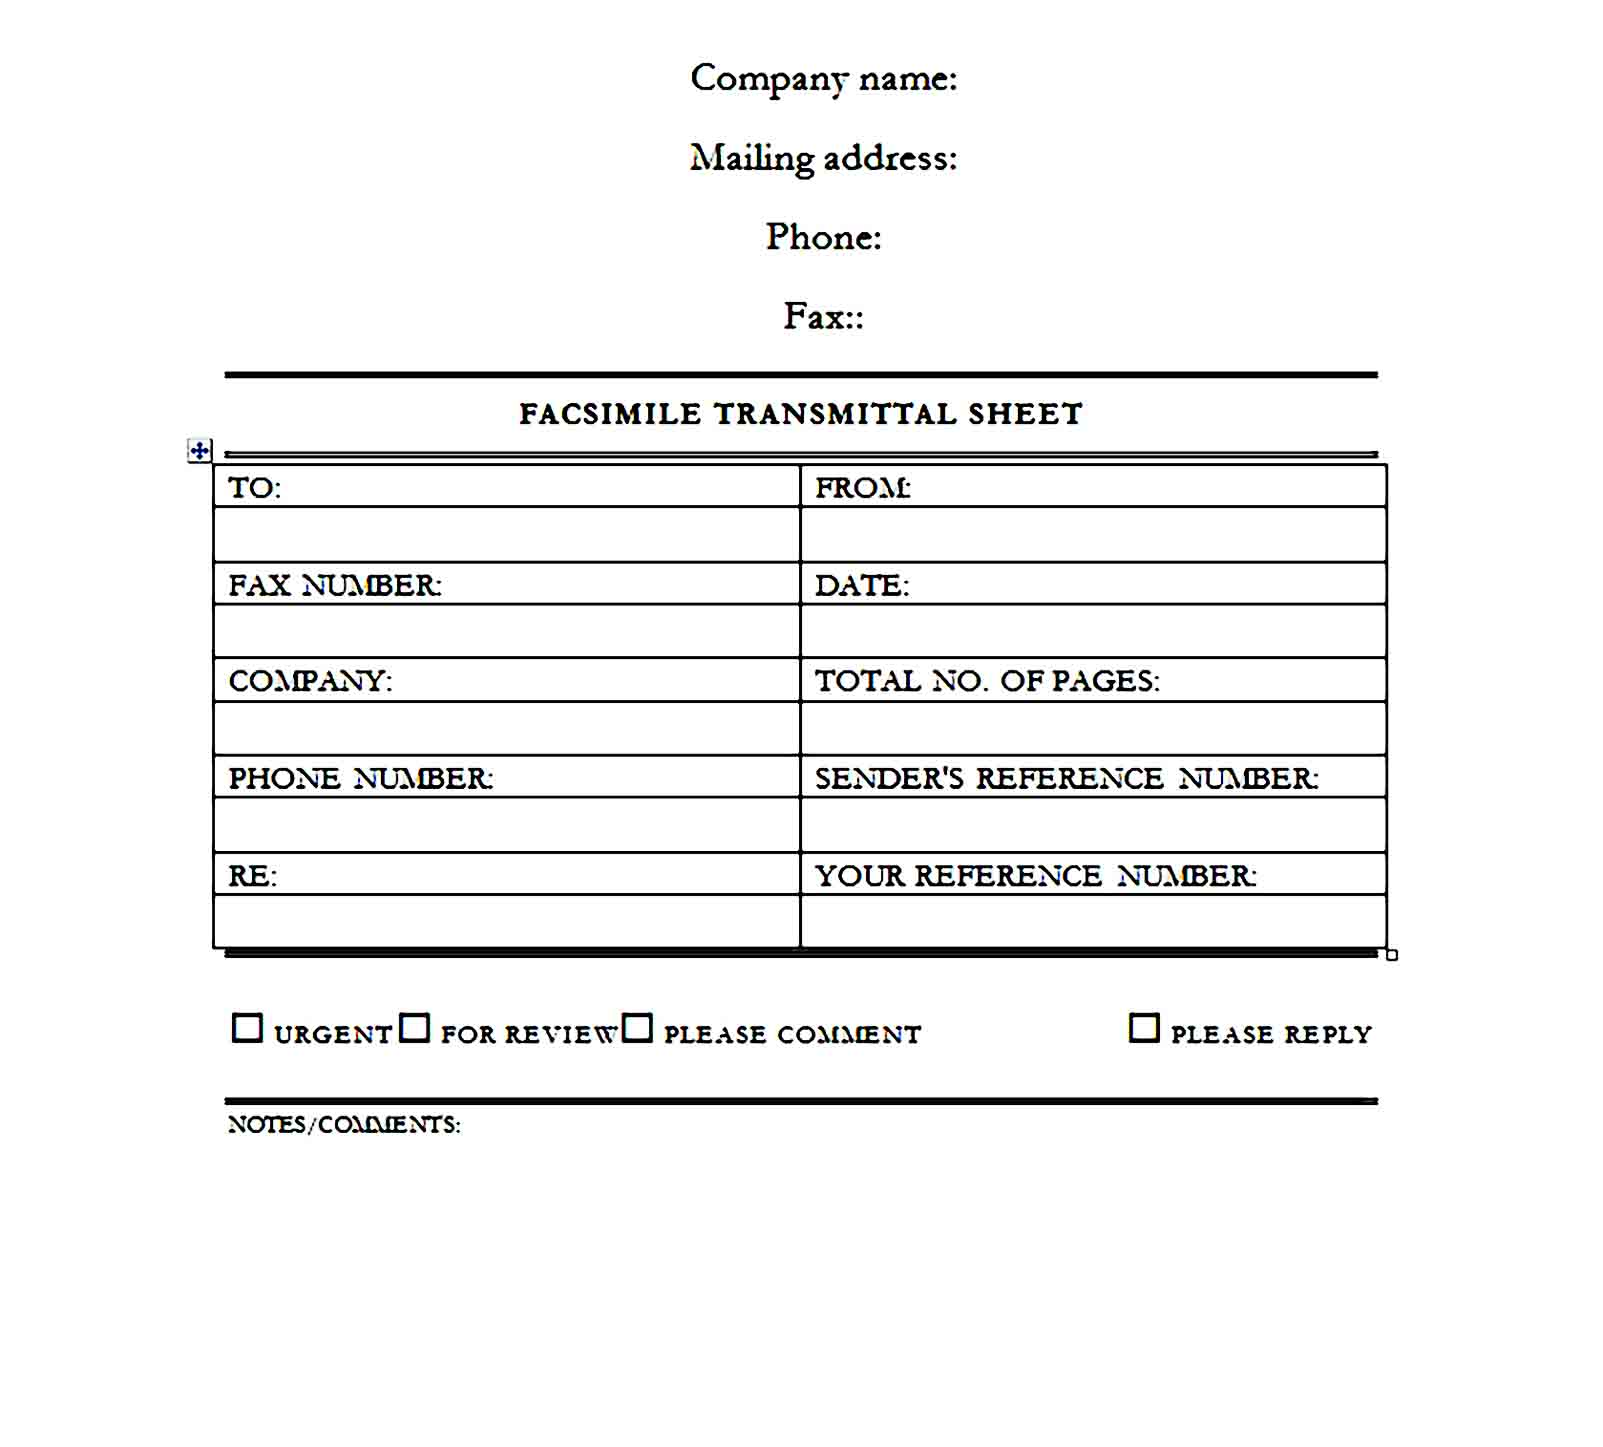 Fax Cover Sheet Template 13